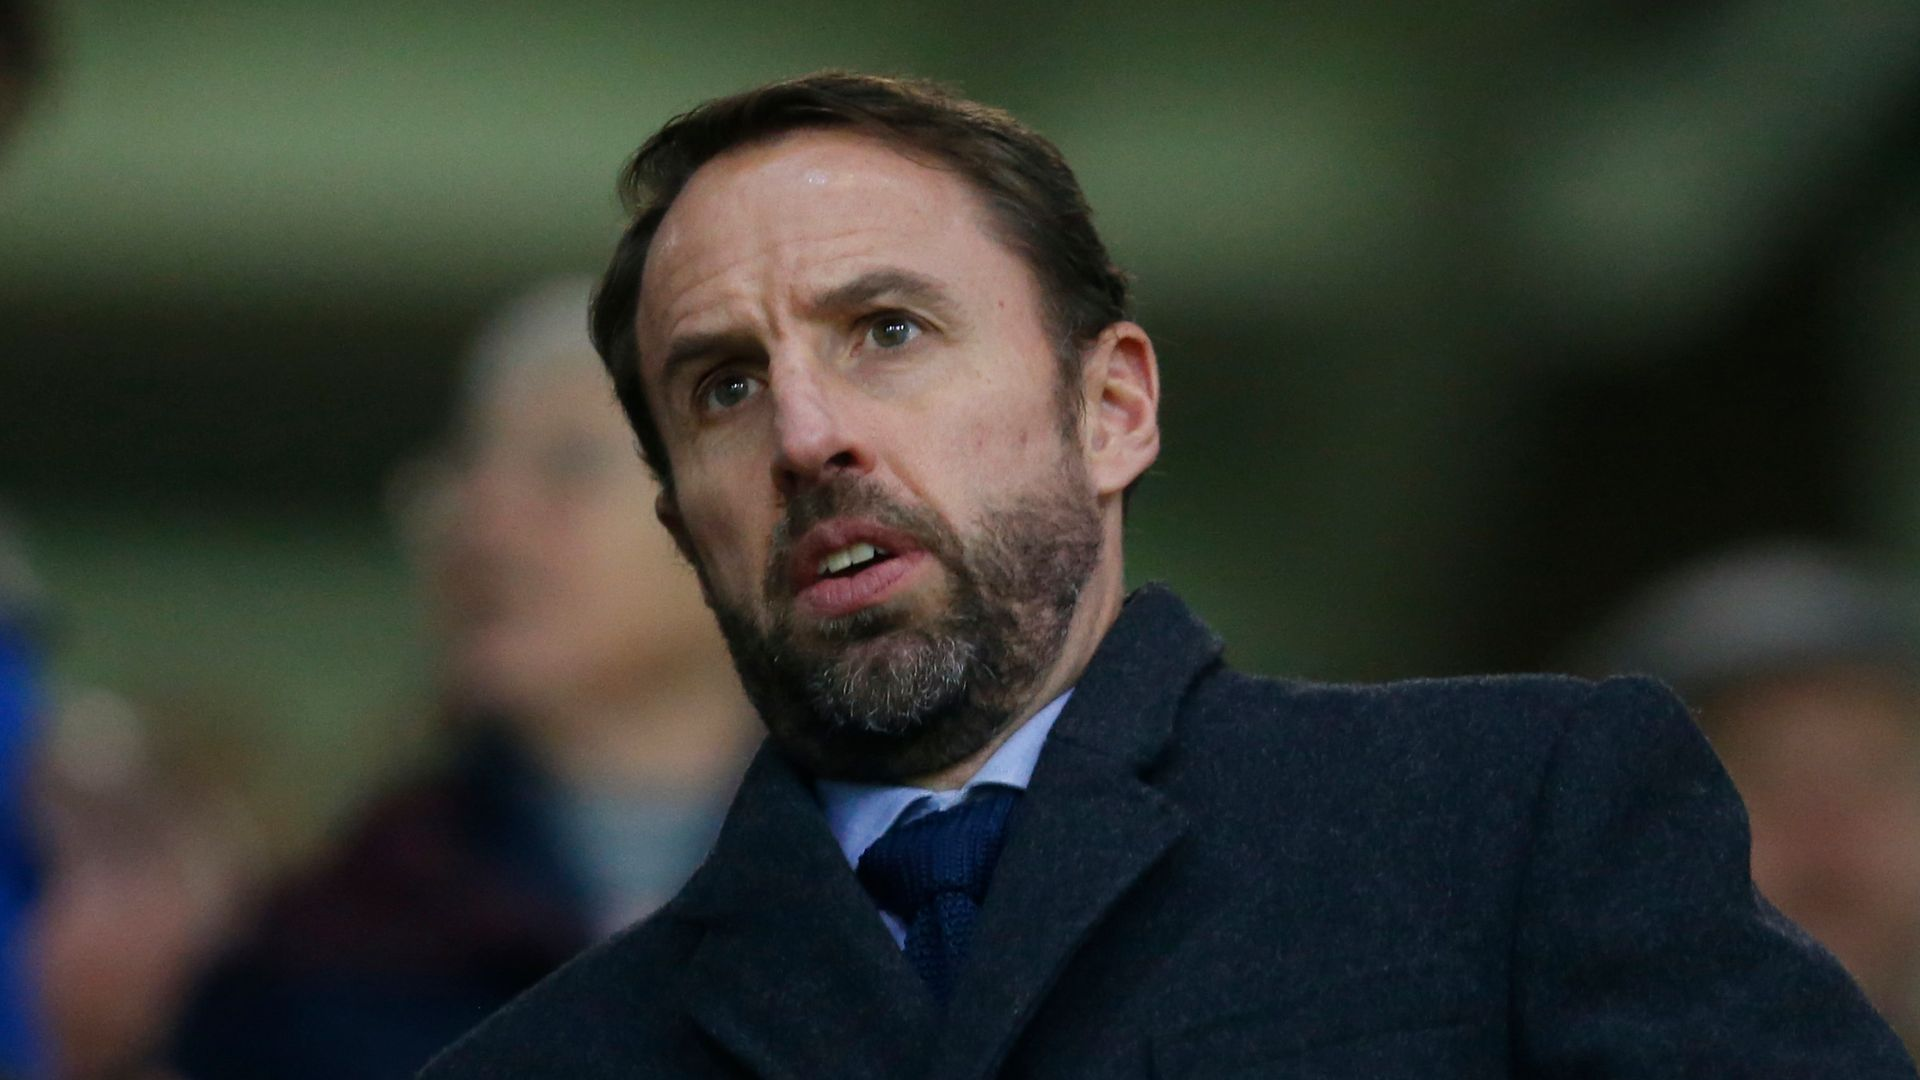 Southgate will not attend PL games